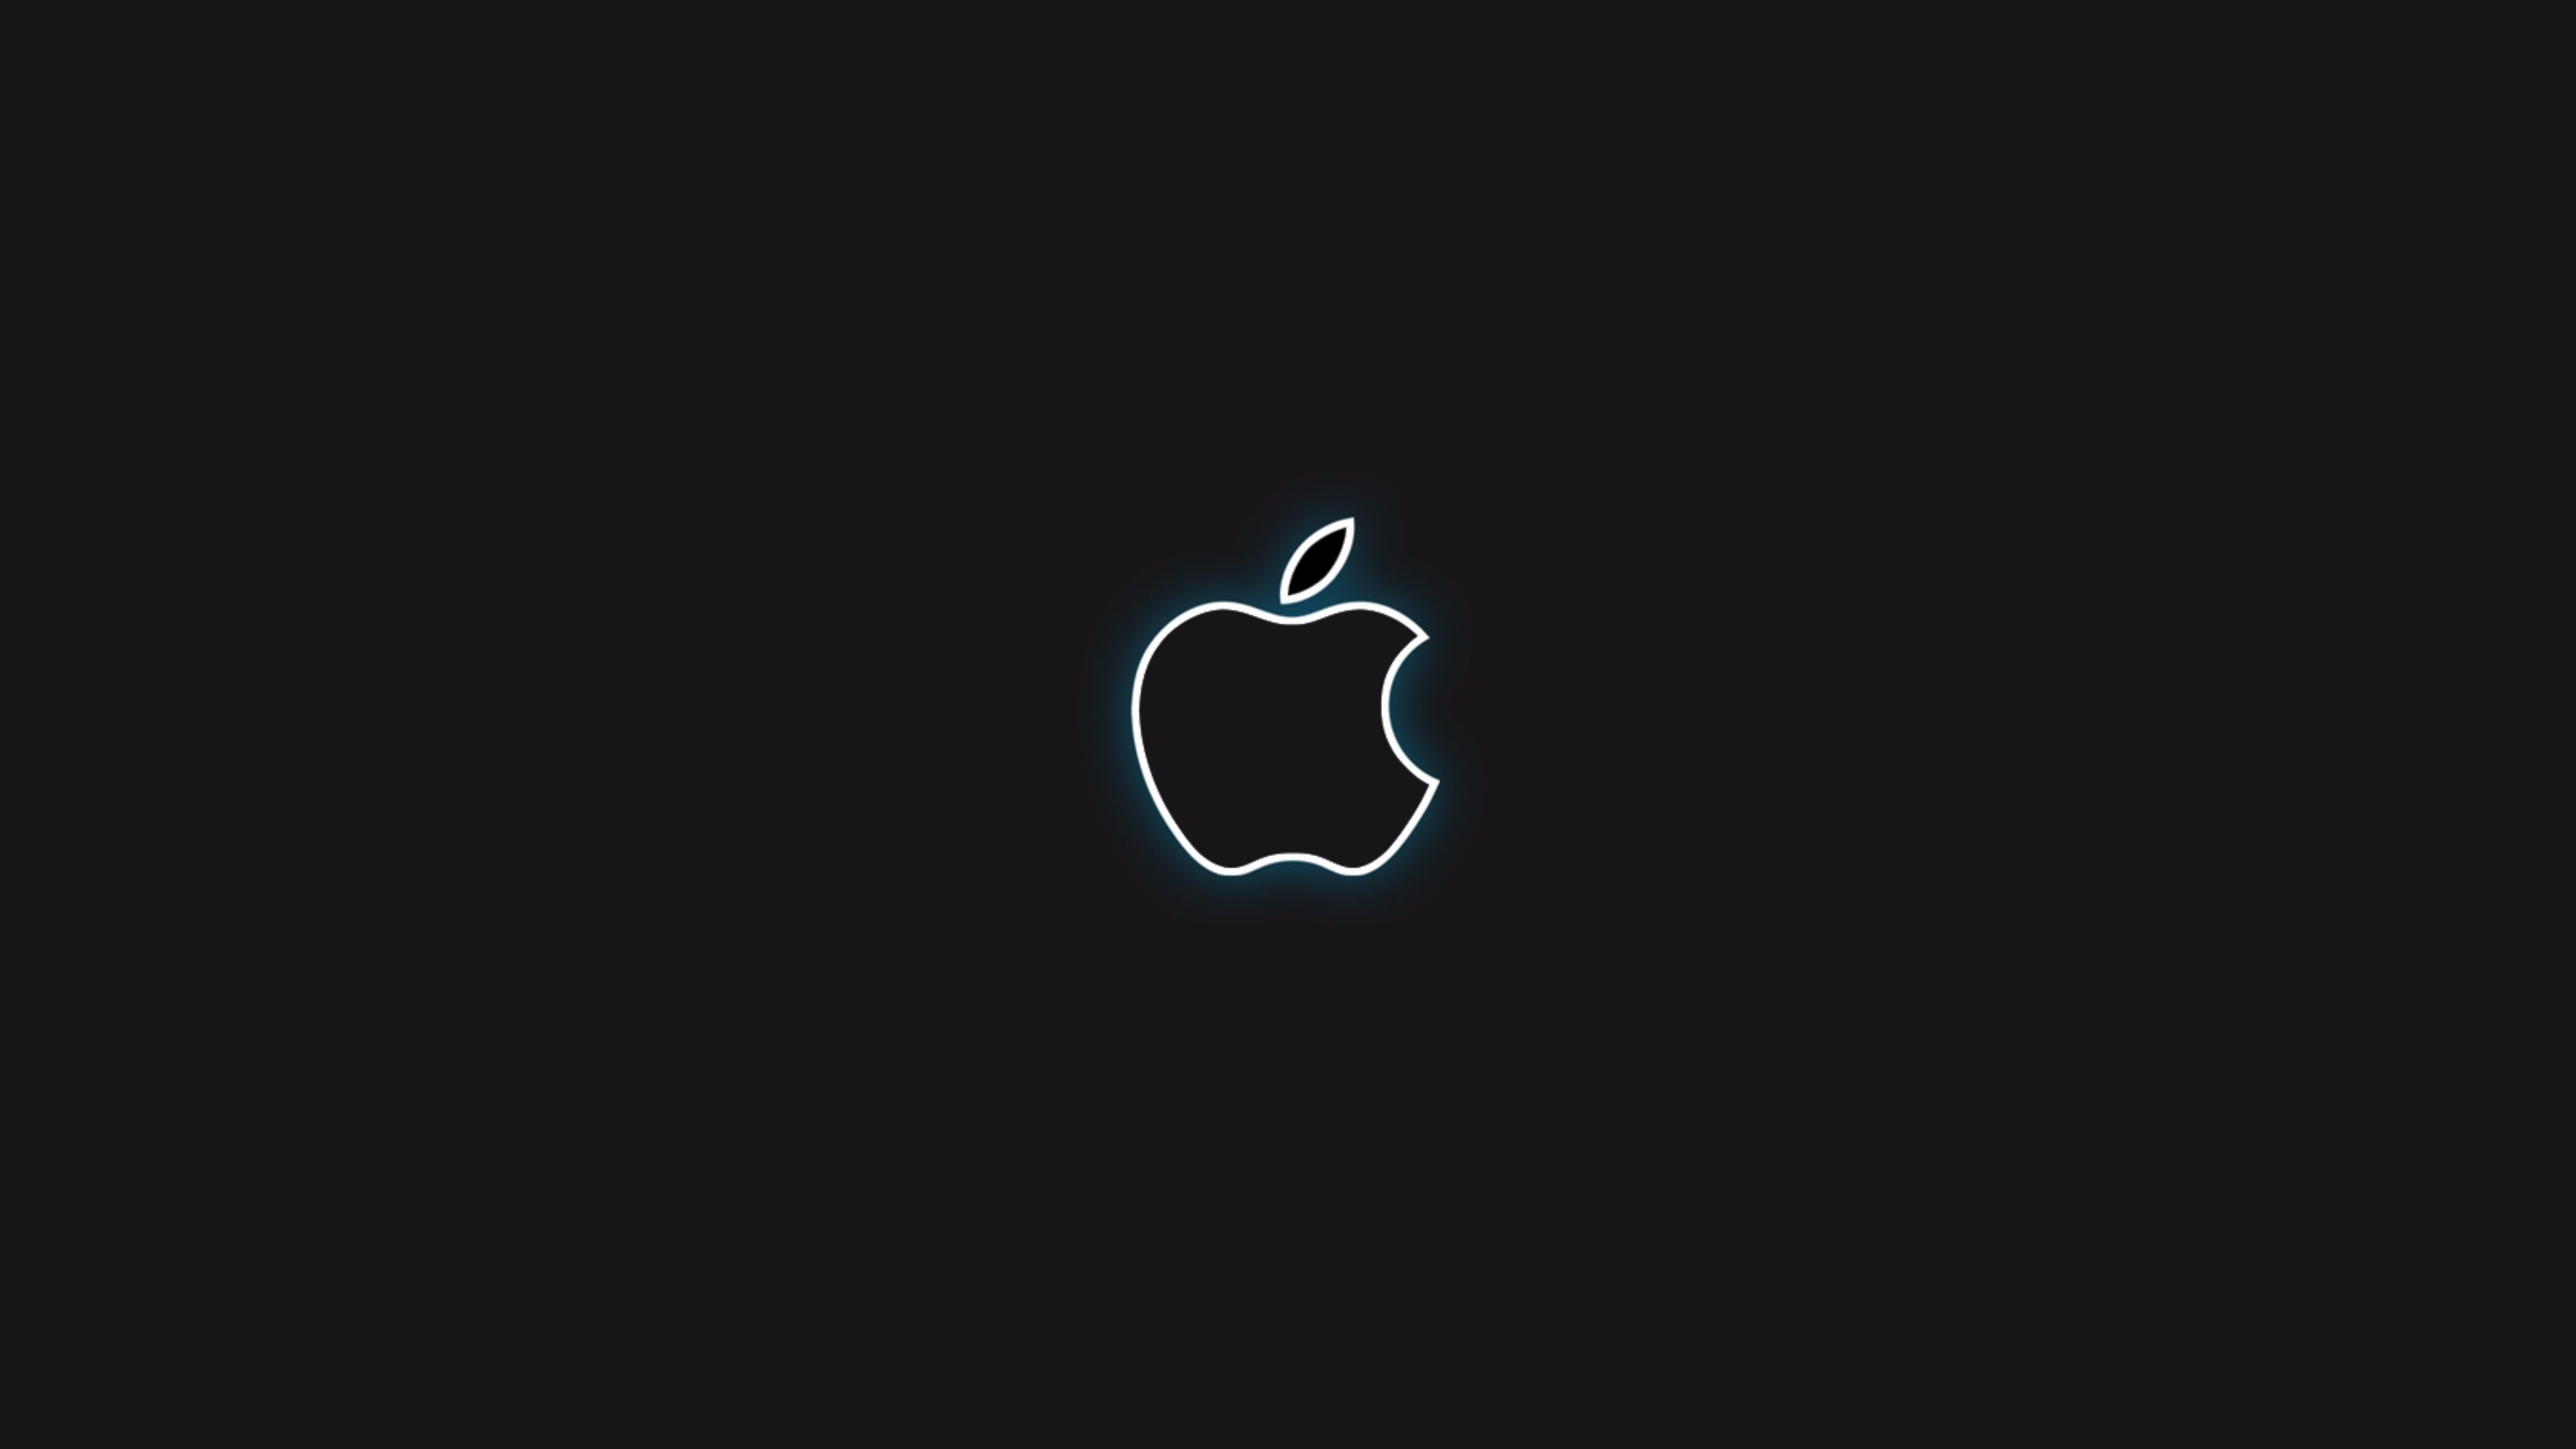 Apple 4k Uhd Wallpapers Top Free Apple 4k Uhd Backgrounds Wallpaperaccess